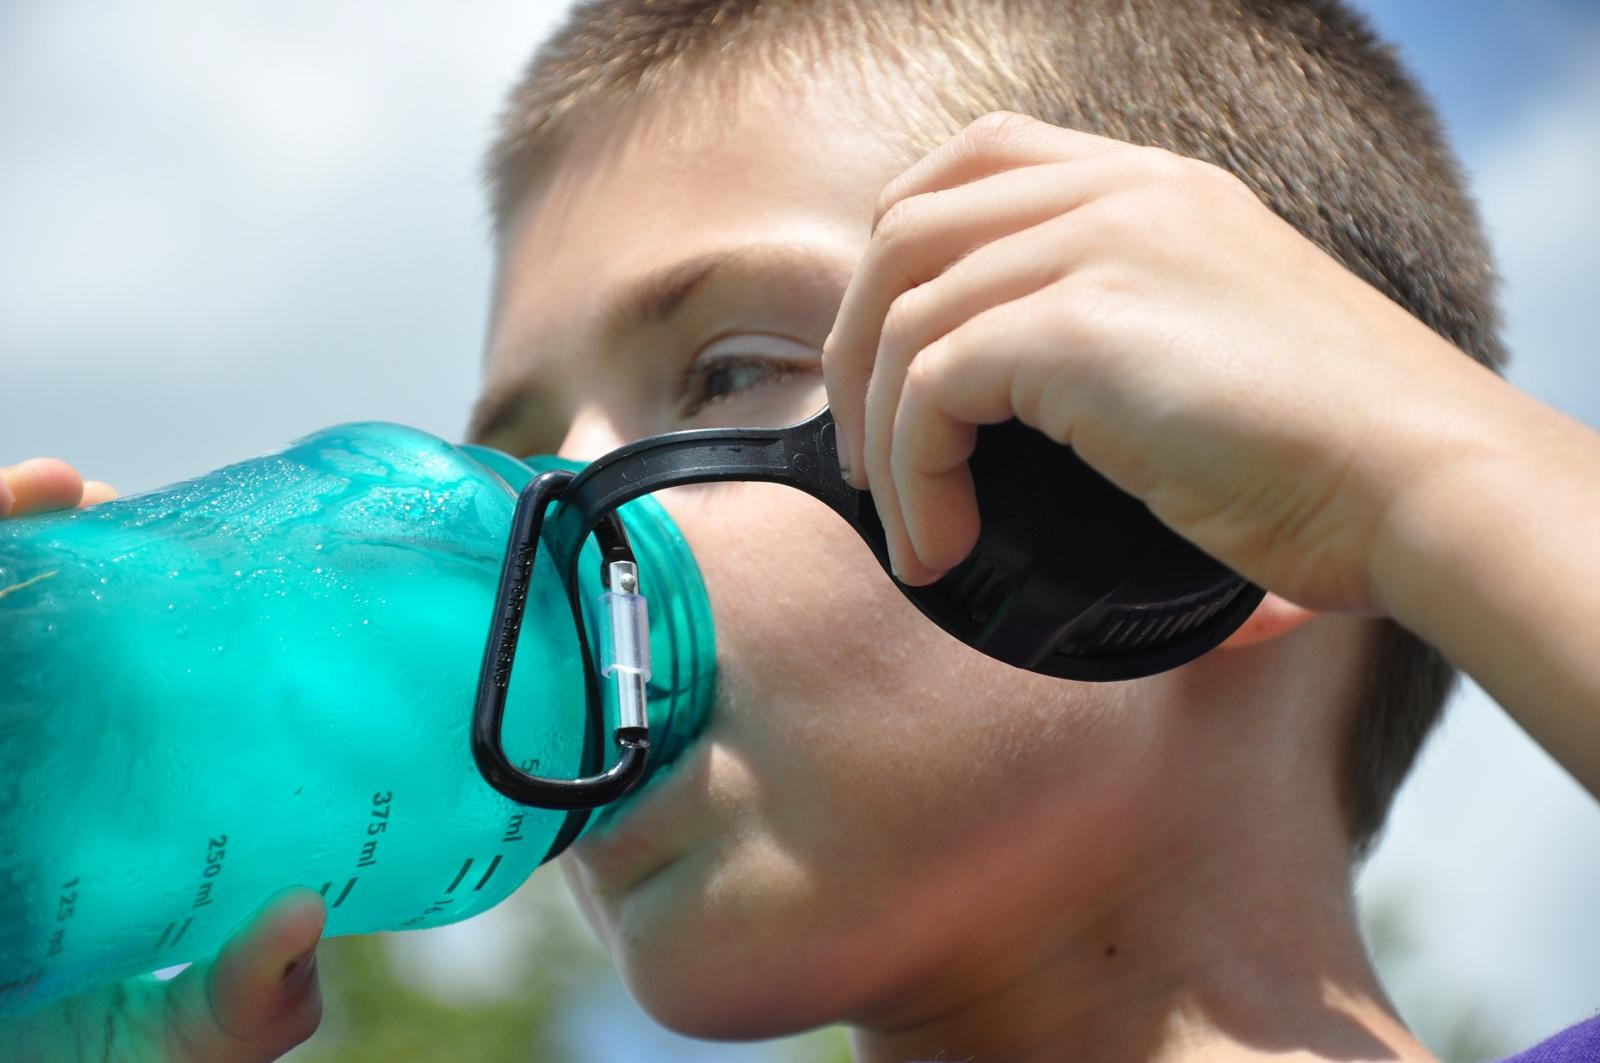 Boy drinking from a reusable bottle. Photo credit: Pixabay